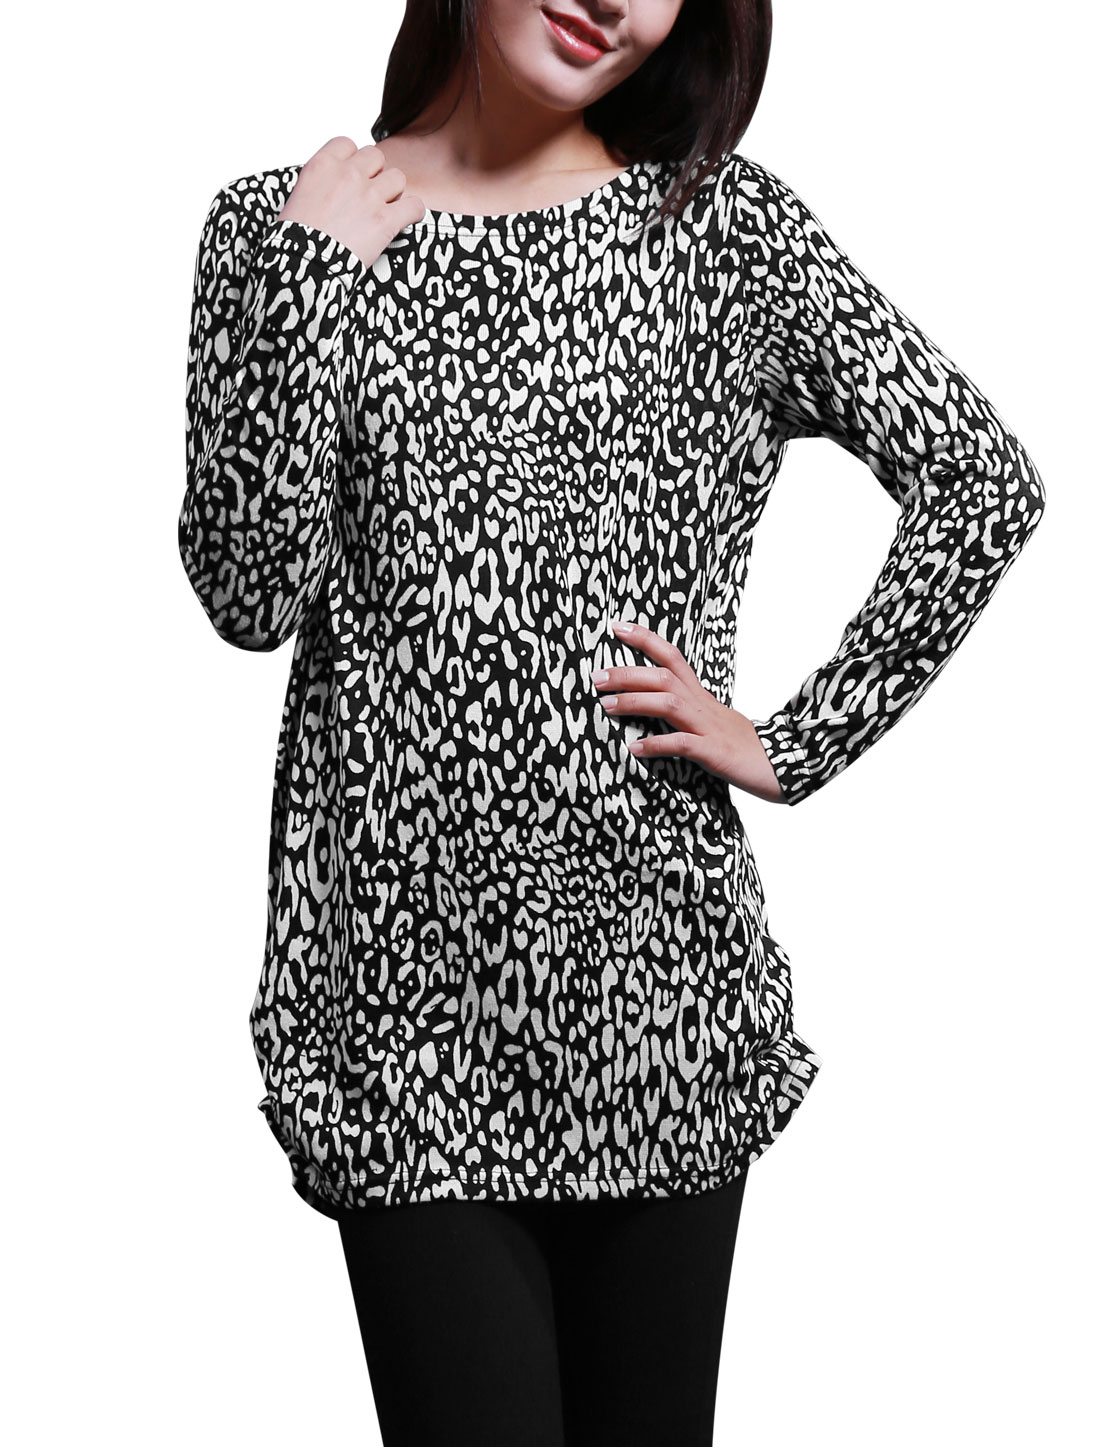 Women Leisure Long Sleeves Allover Leopard Print Tunic Knit Shirt Black White S